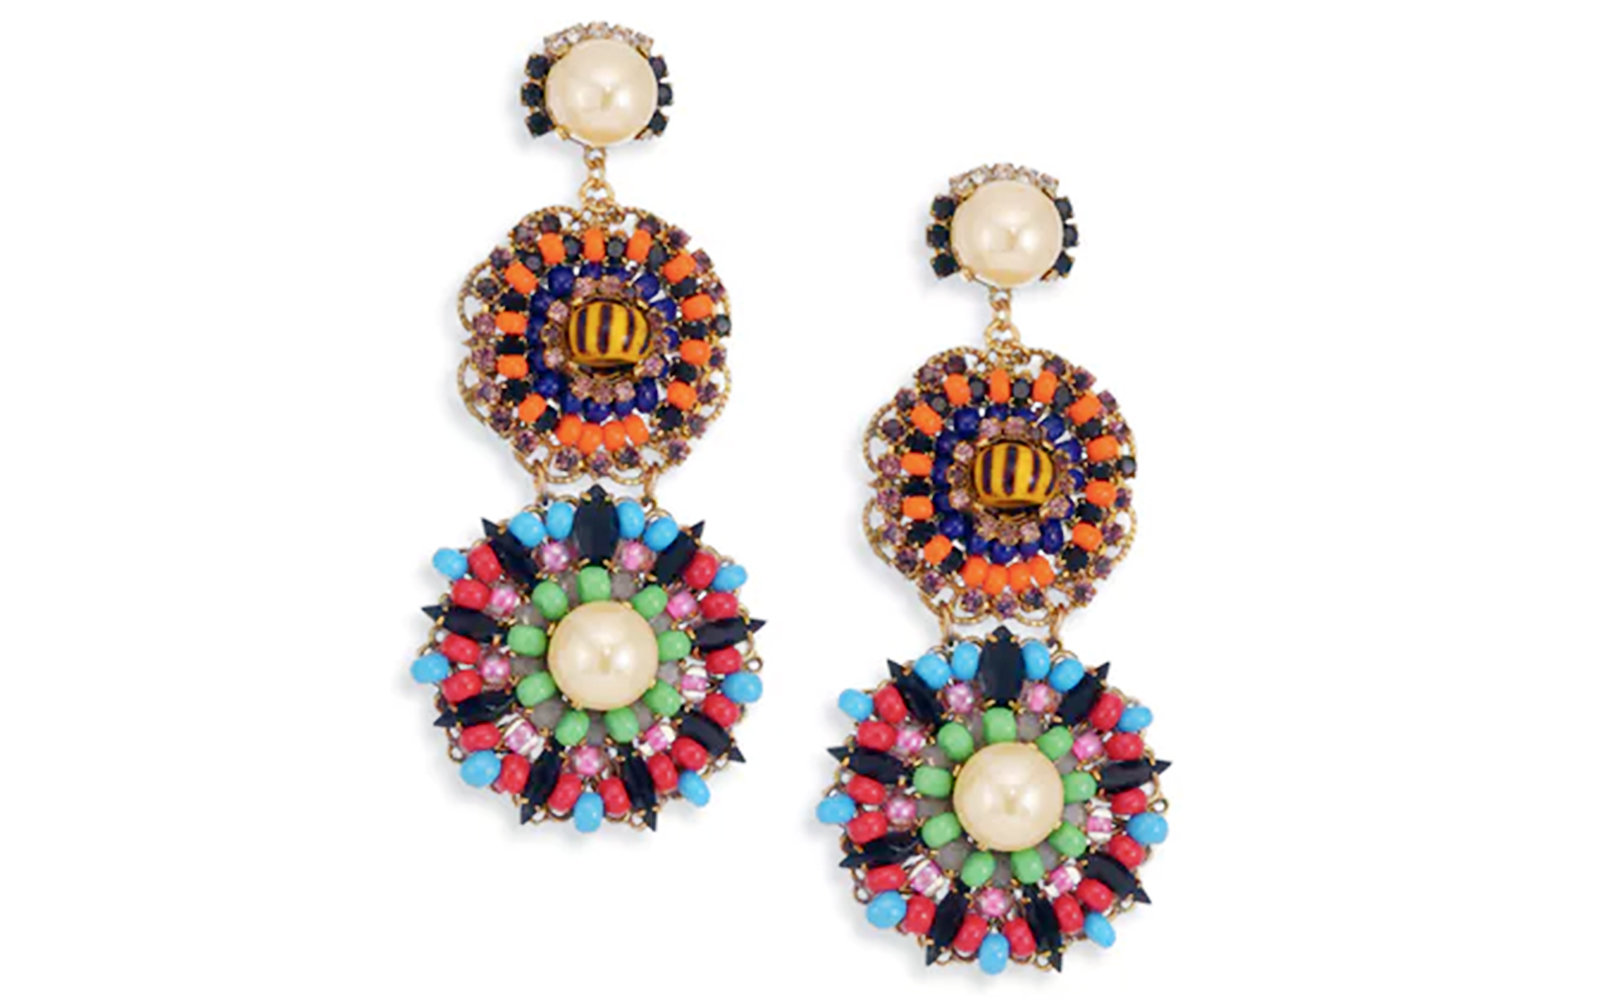 Erickson Beamon Summer Statement Earrings